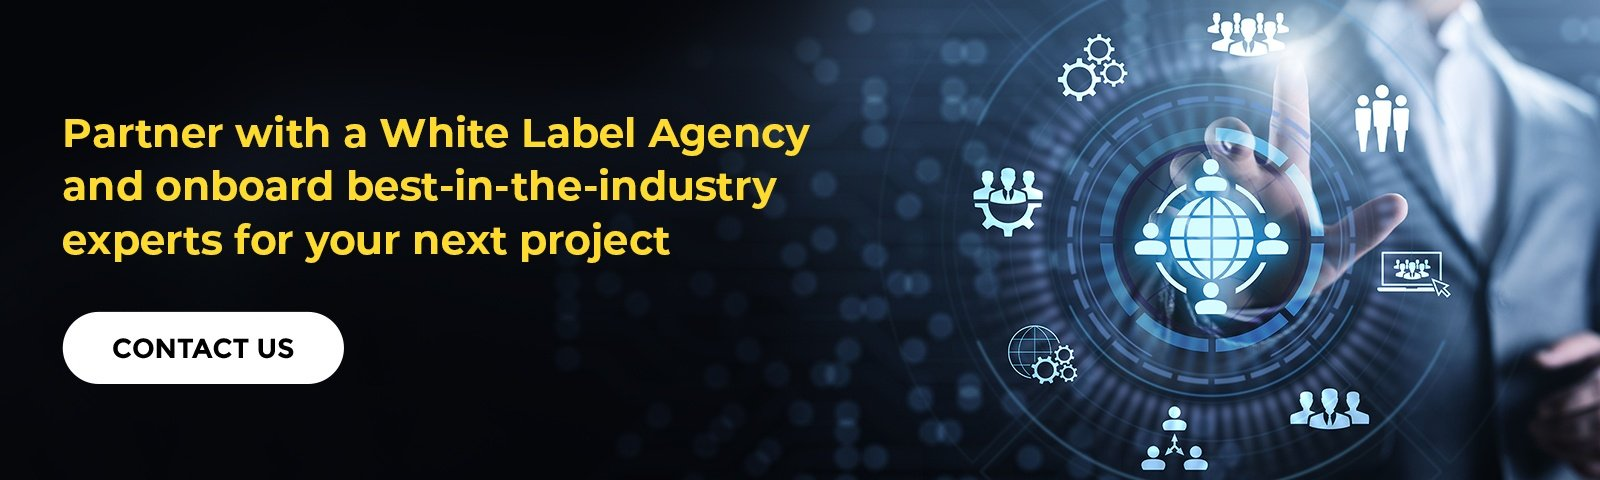 Partner with White Label Agency